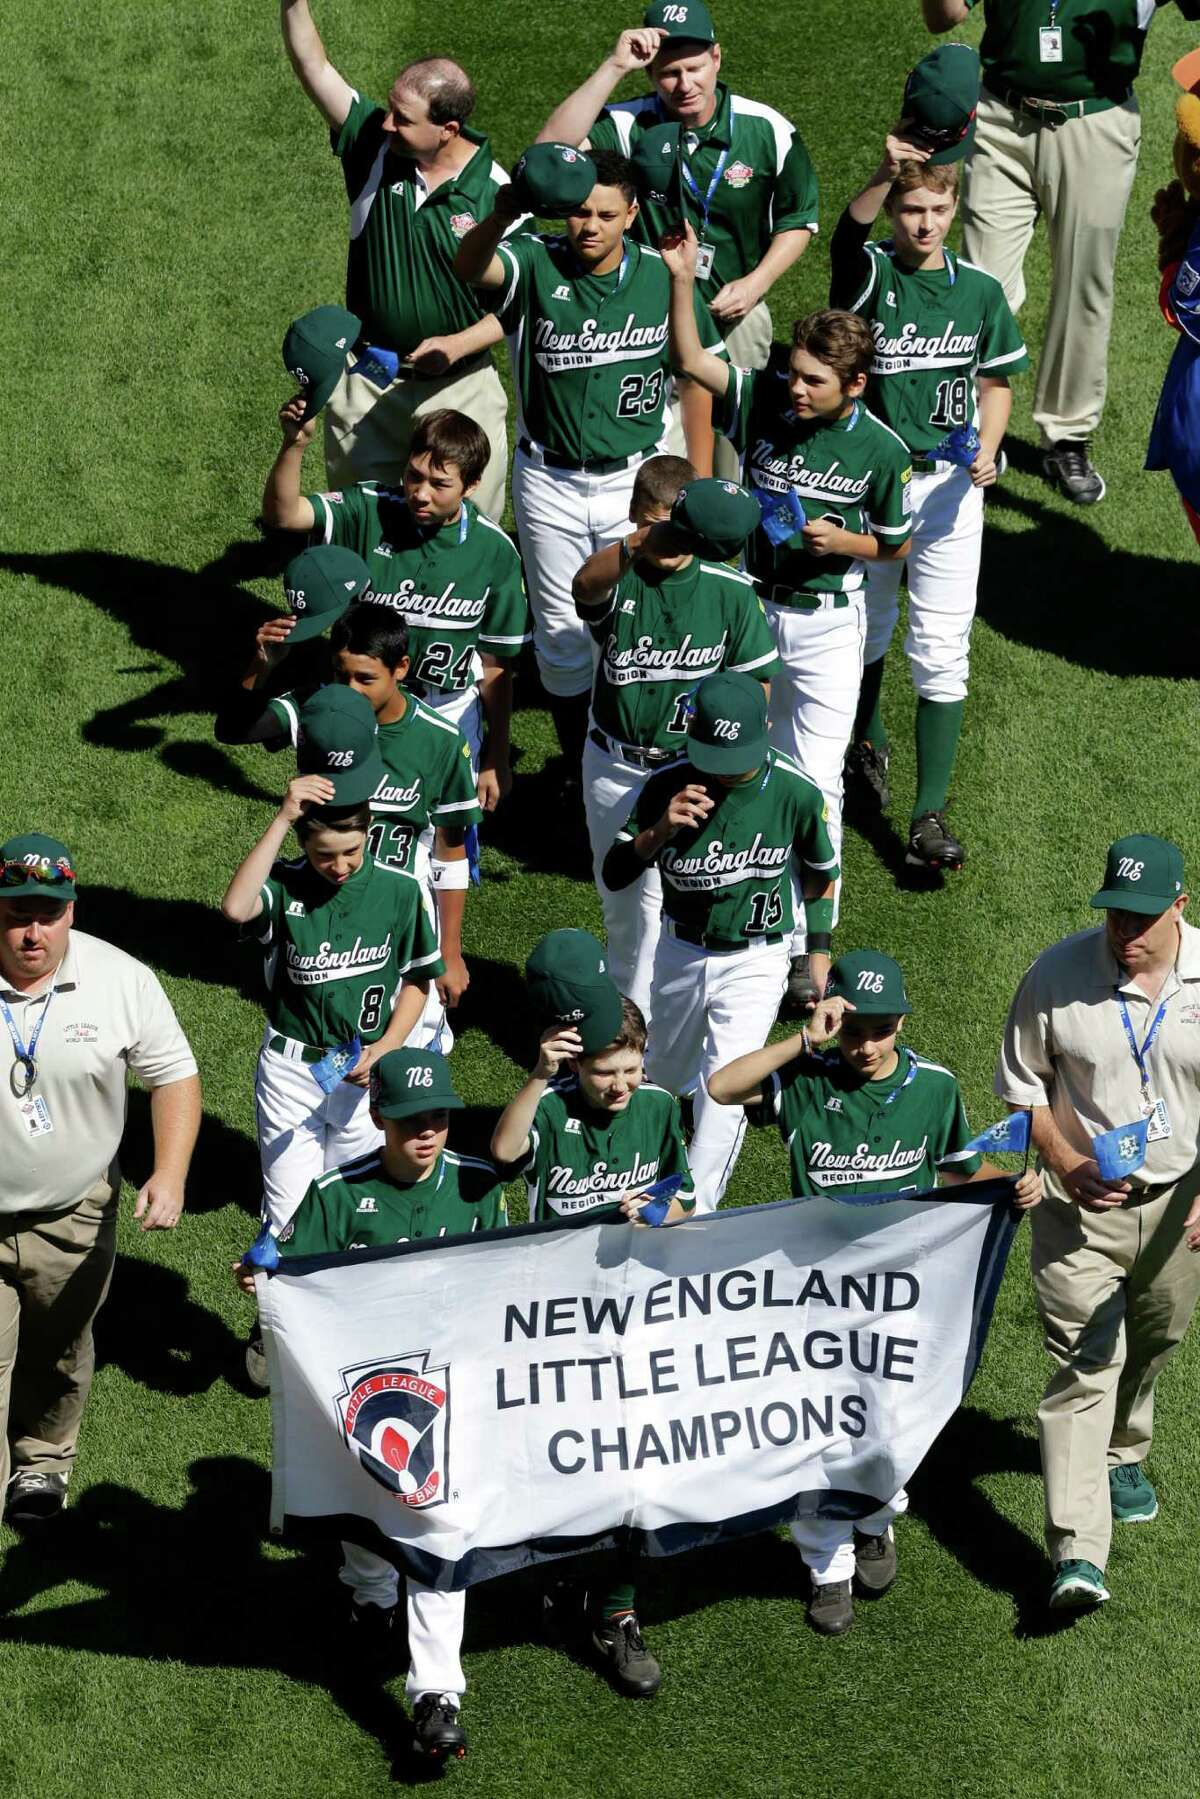 The Little League baseball team from Westport, Conn. participates in the opening ceremony of the 2013 Little League World Series tournament in South Williamsport, Pa., Thursday, Aug. 15, 2013.